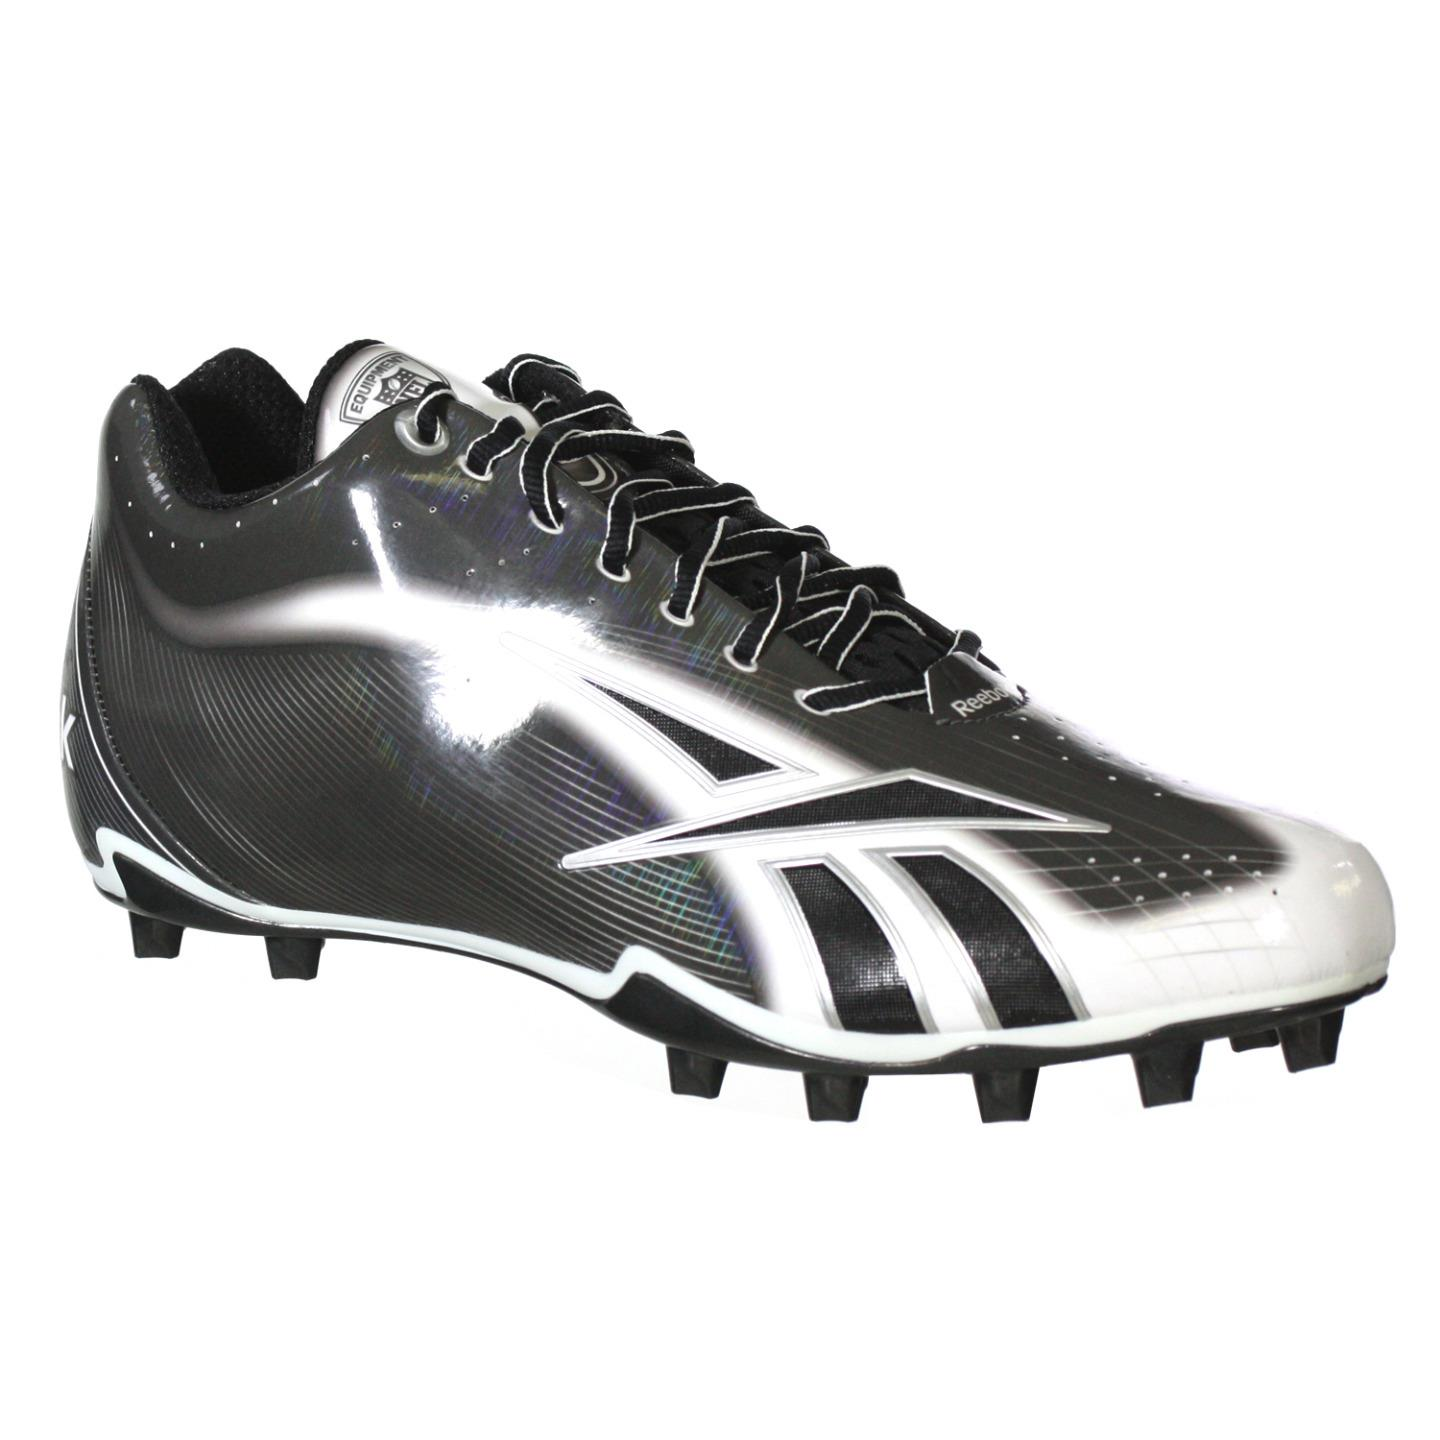 REEBOK NFL BURNER SPD LT 5/8 M4 MENS FOOTBALL CLEATS BLACK, WHITE, SILVER 12.5